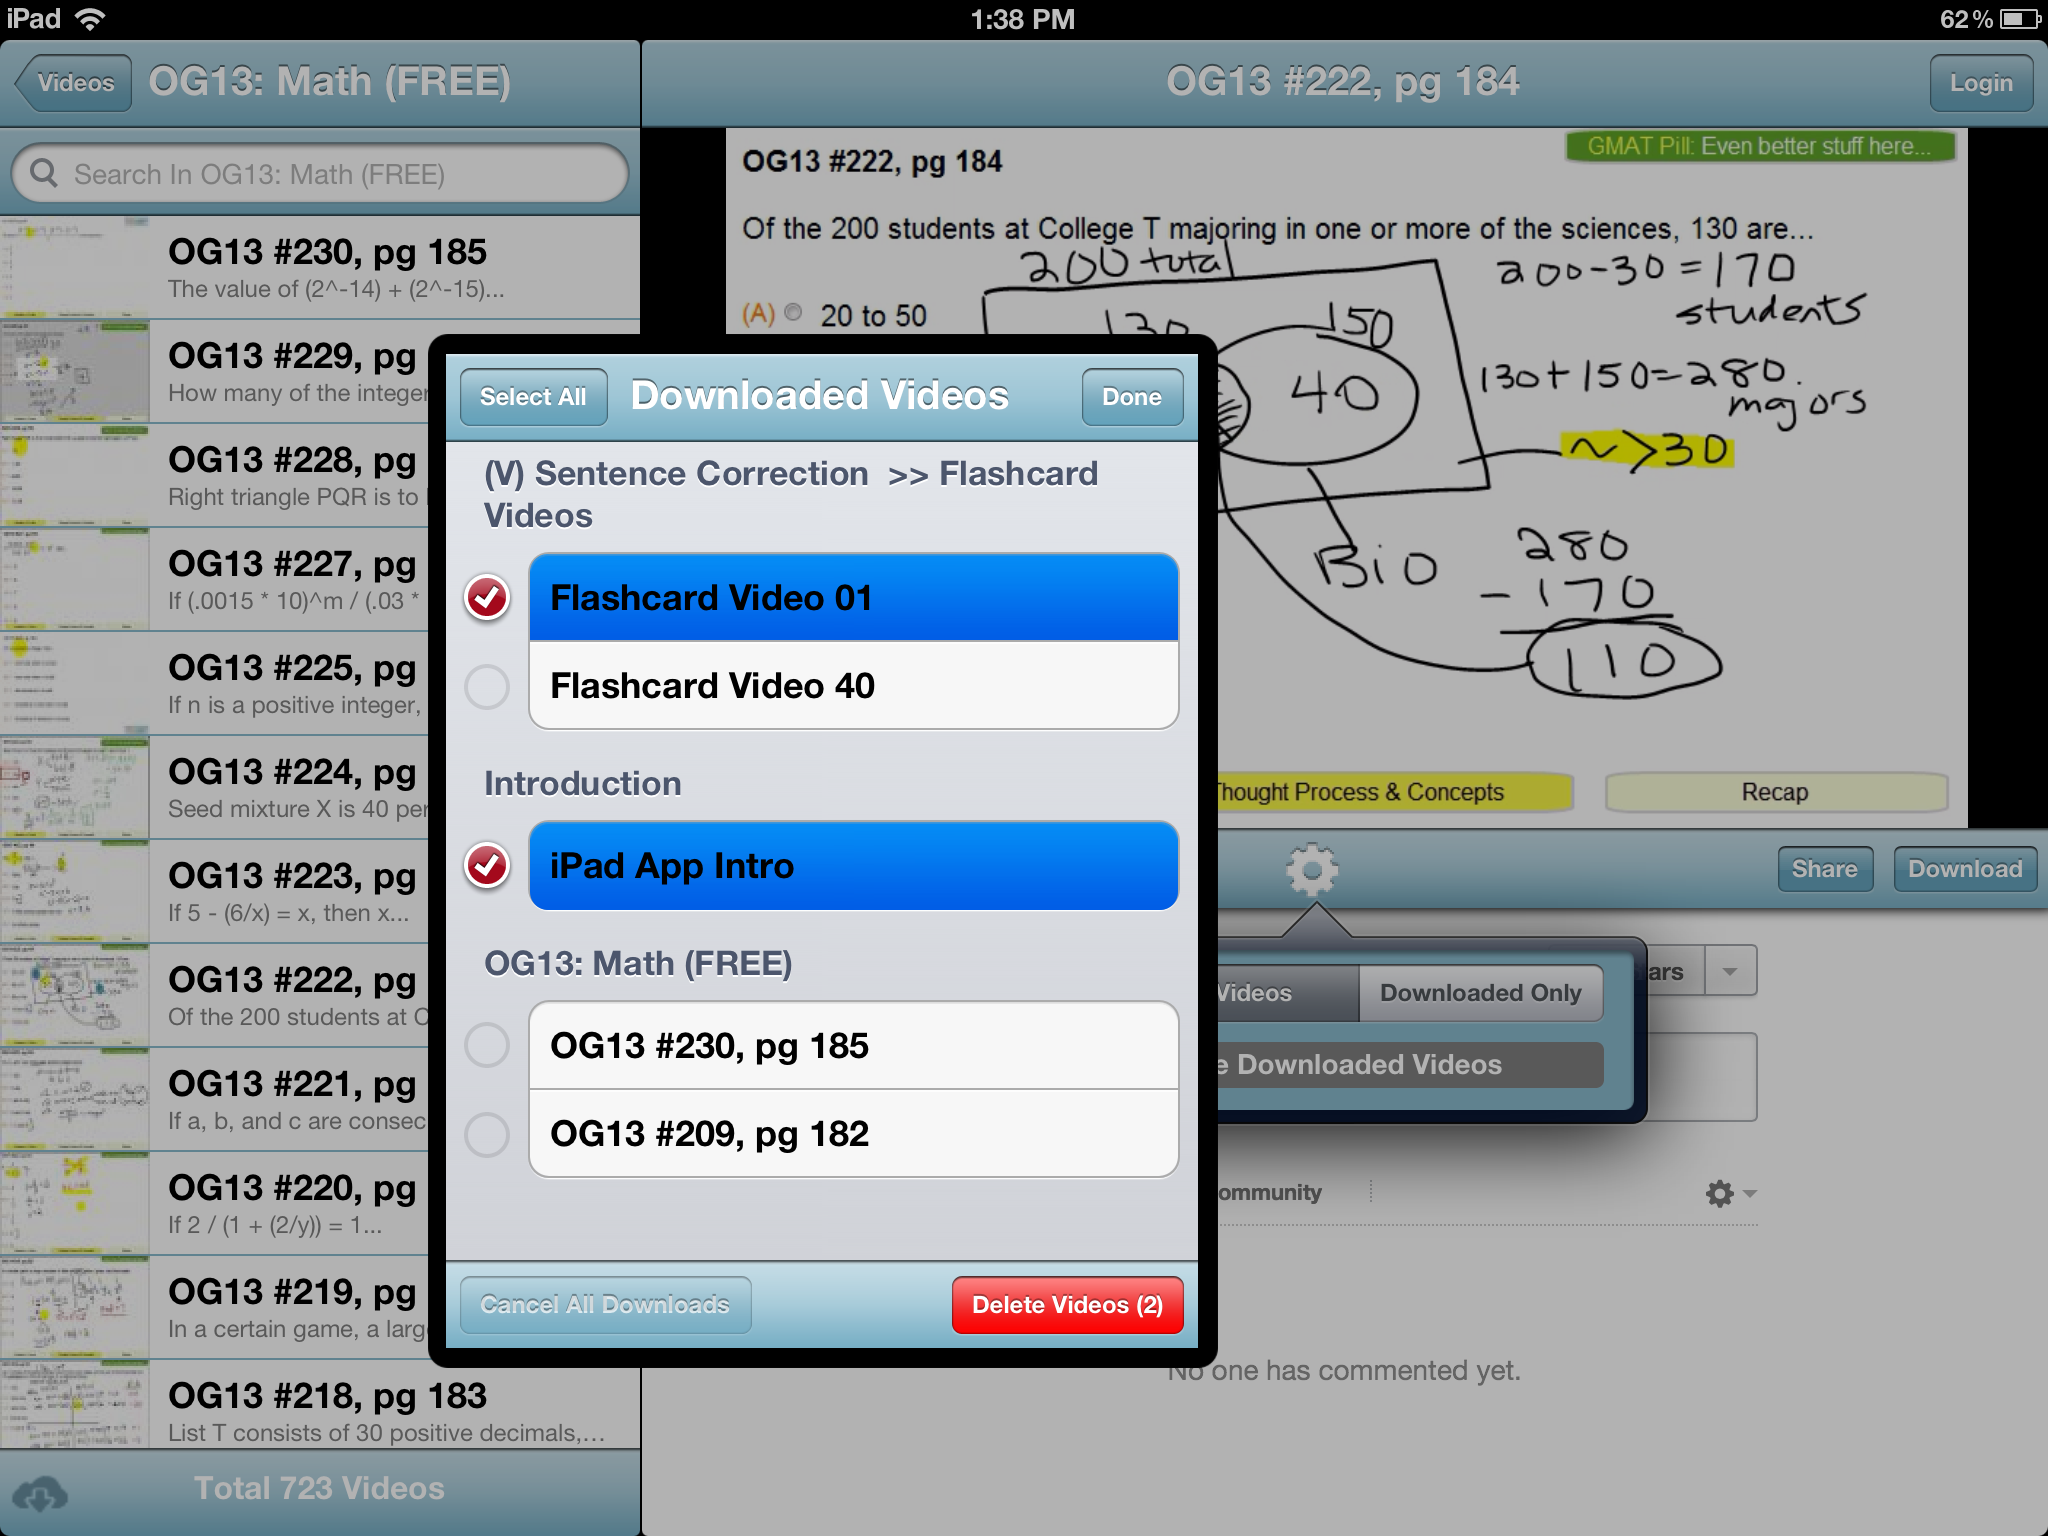 ipad8 How To Download GMAT Pill iPad App (Approved by Apple)